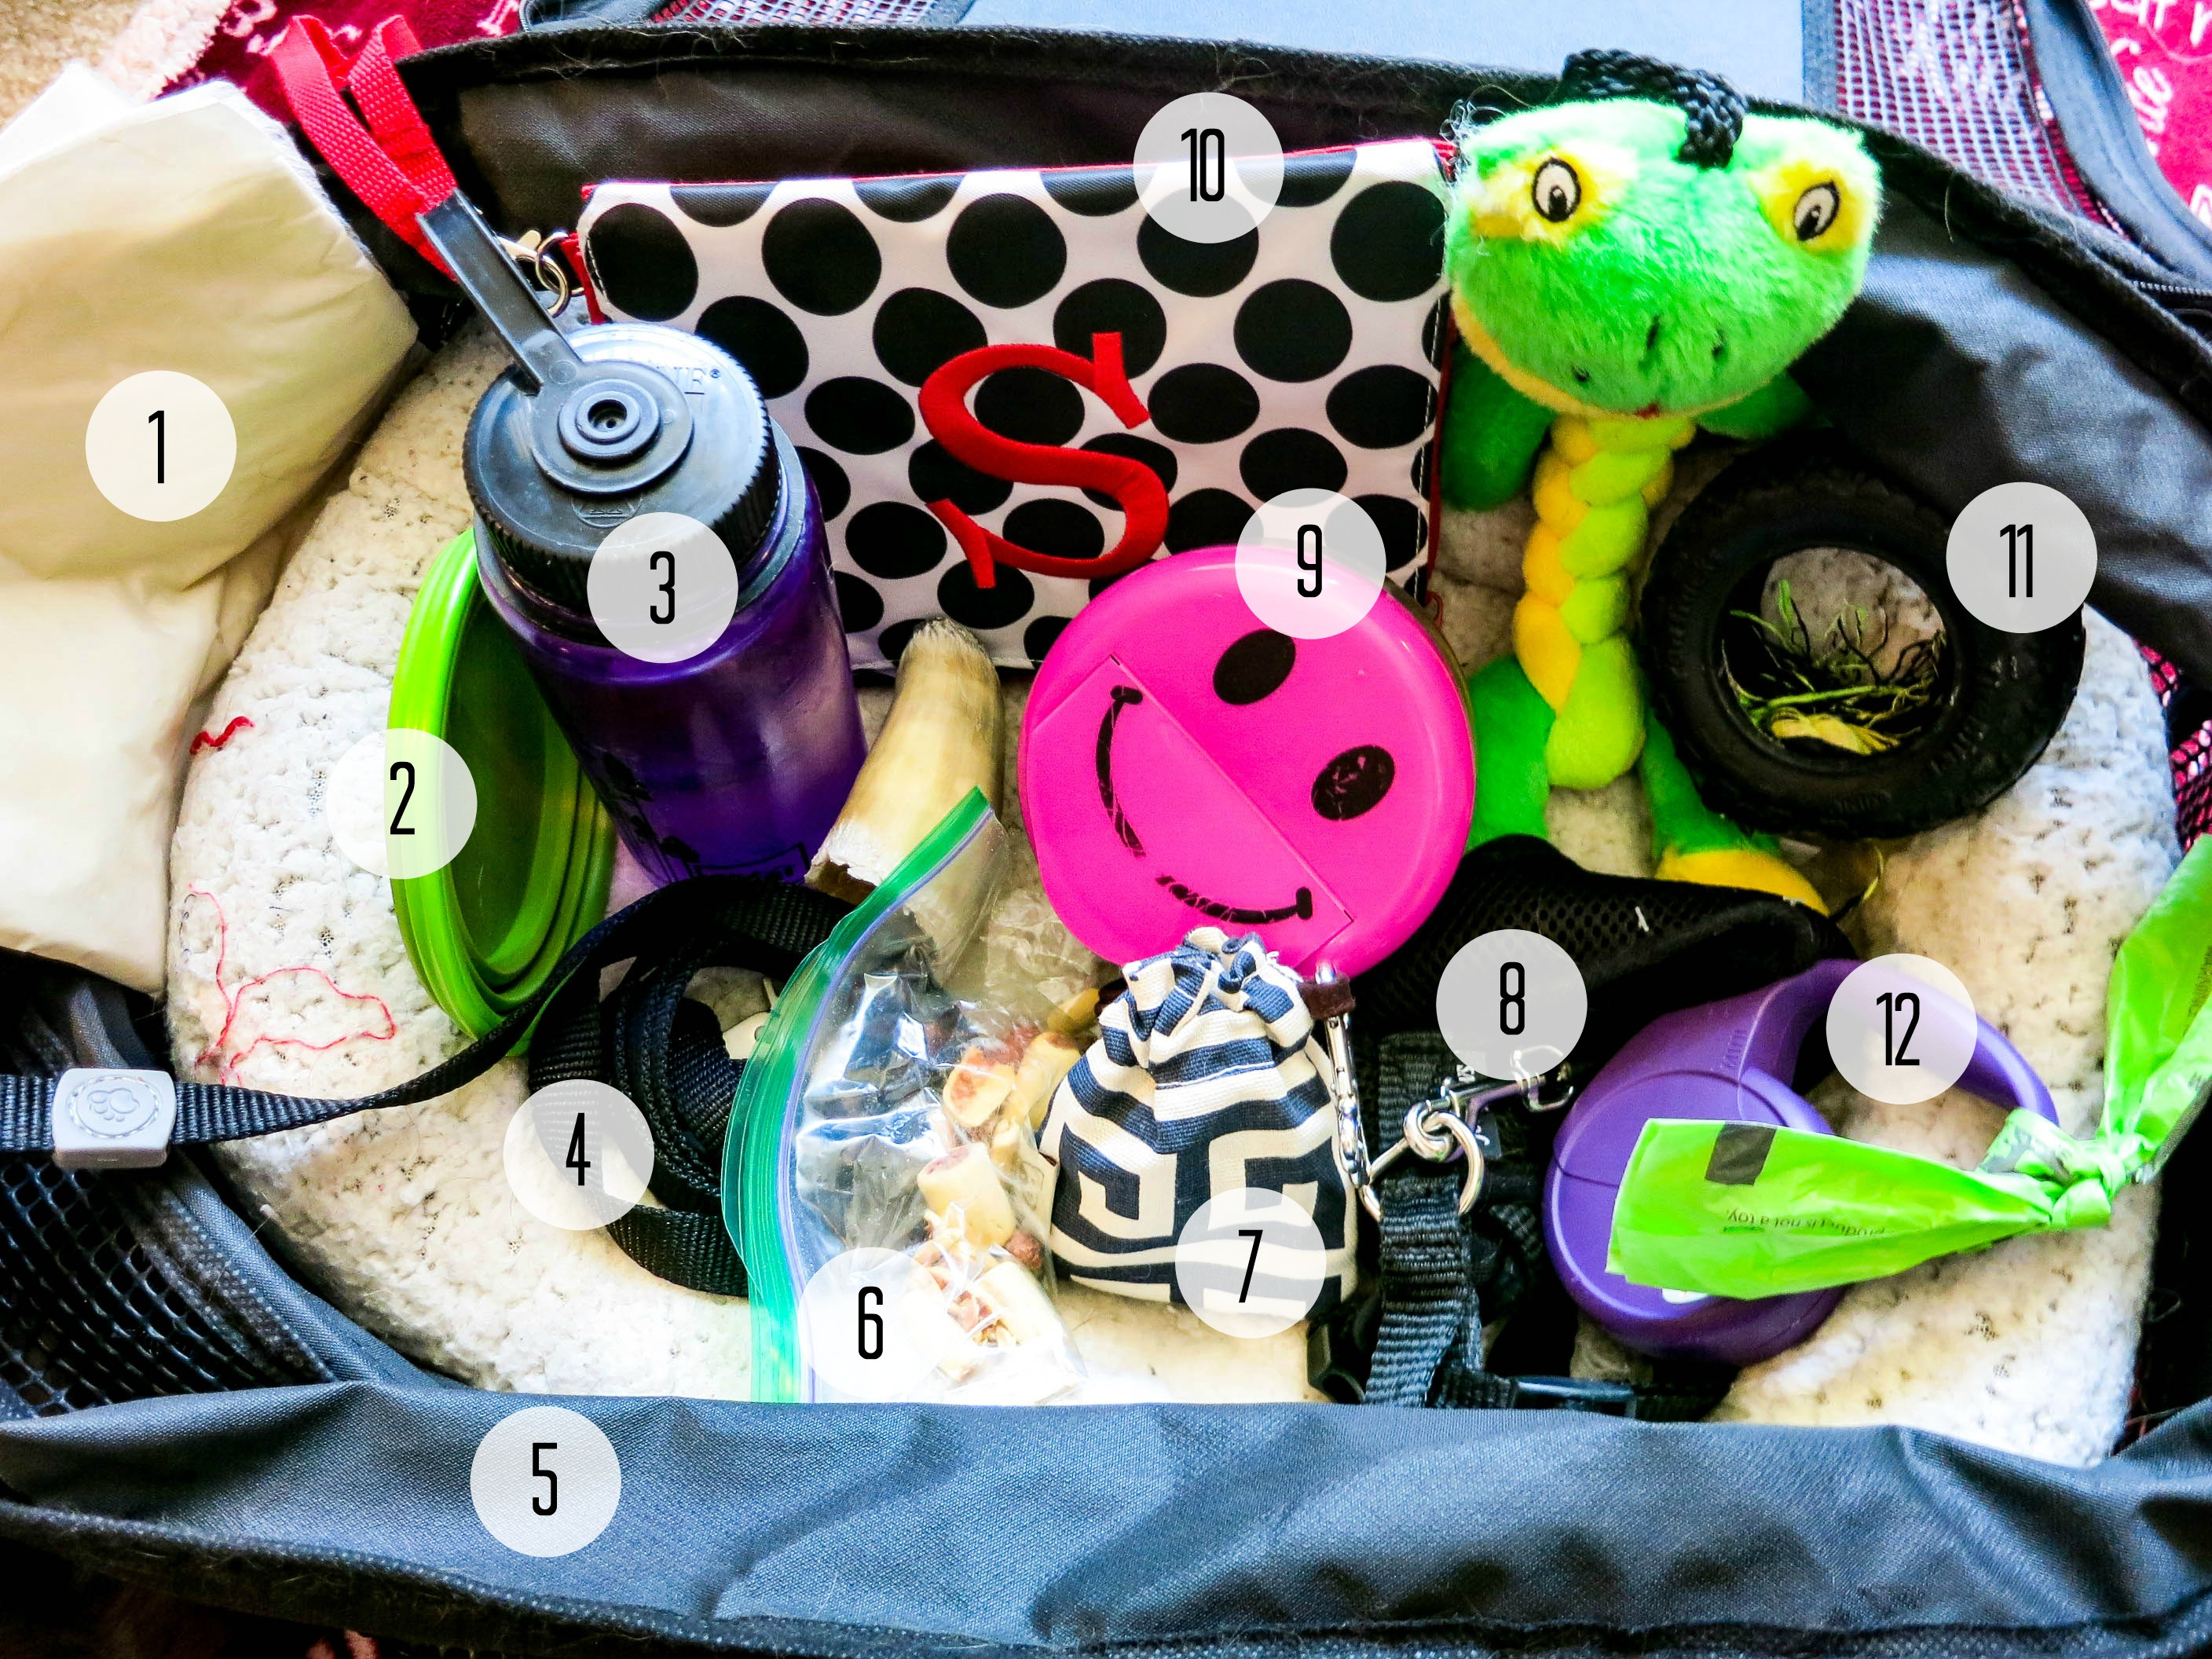 Supplies for flying with pet